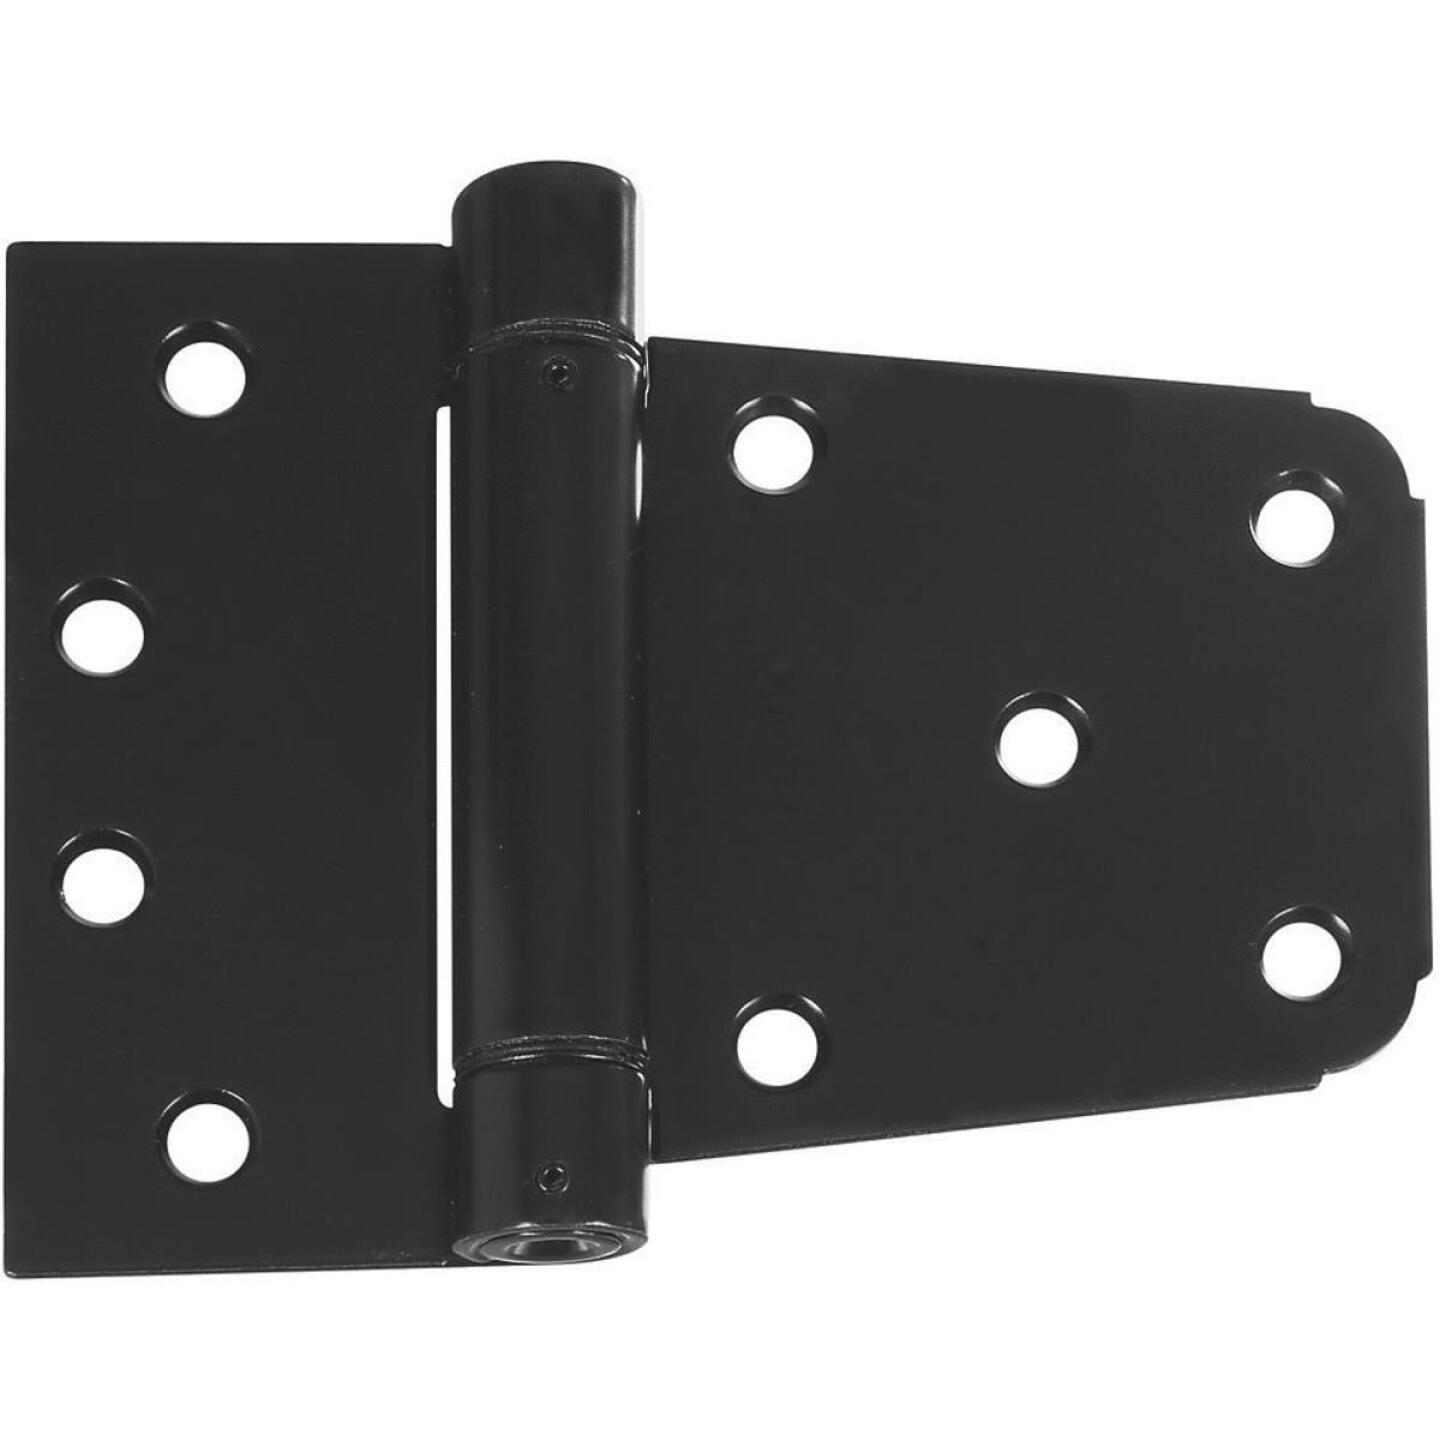 National 3-1/2 In. Black Heavy-Duty Spring Gate Hinge Image 1